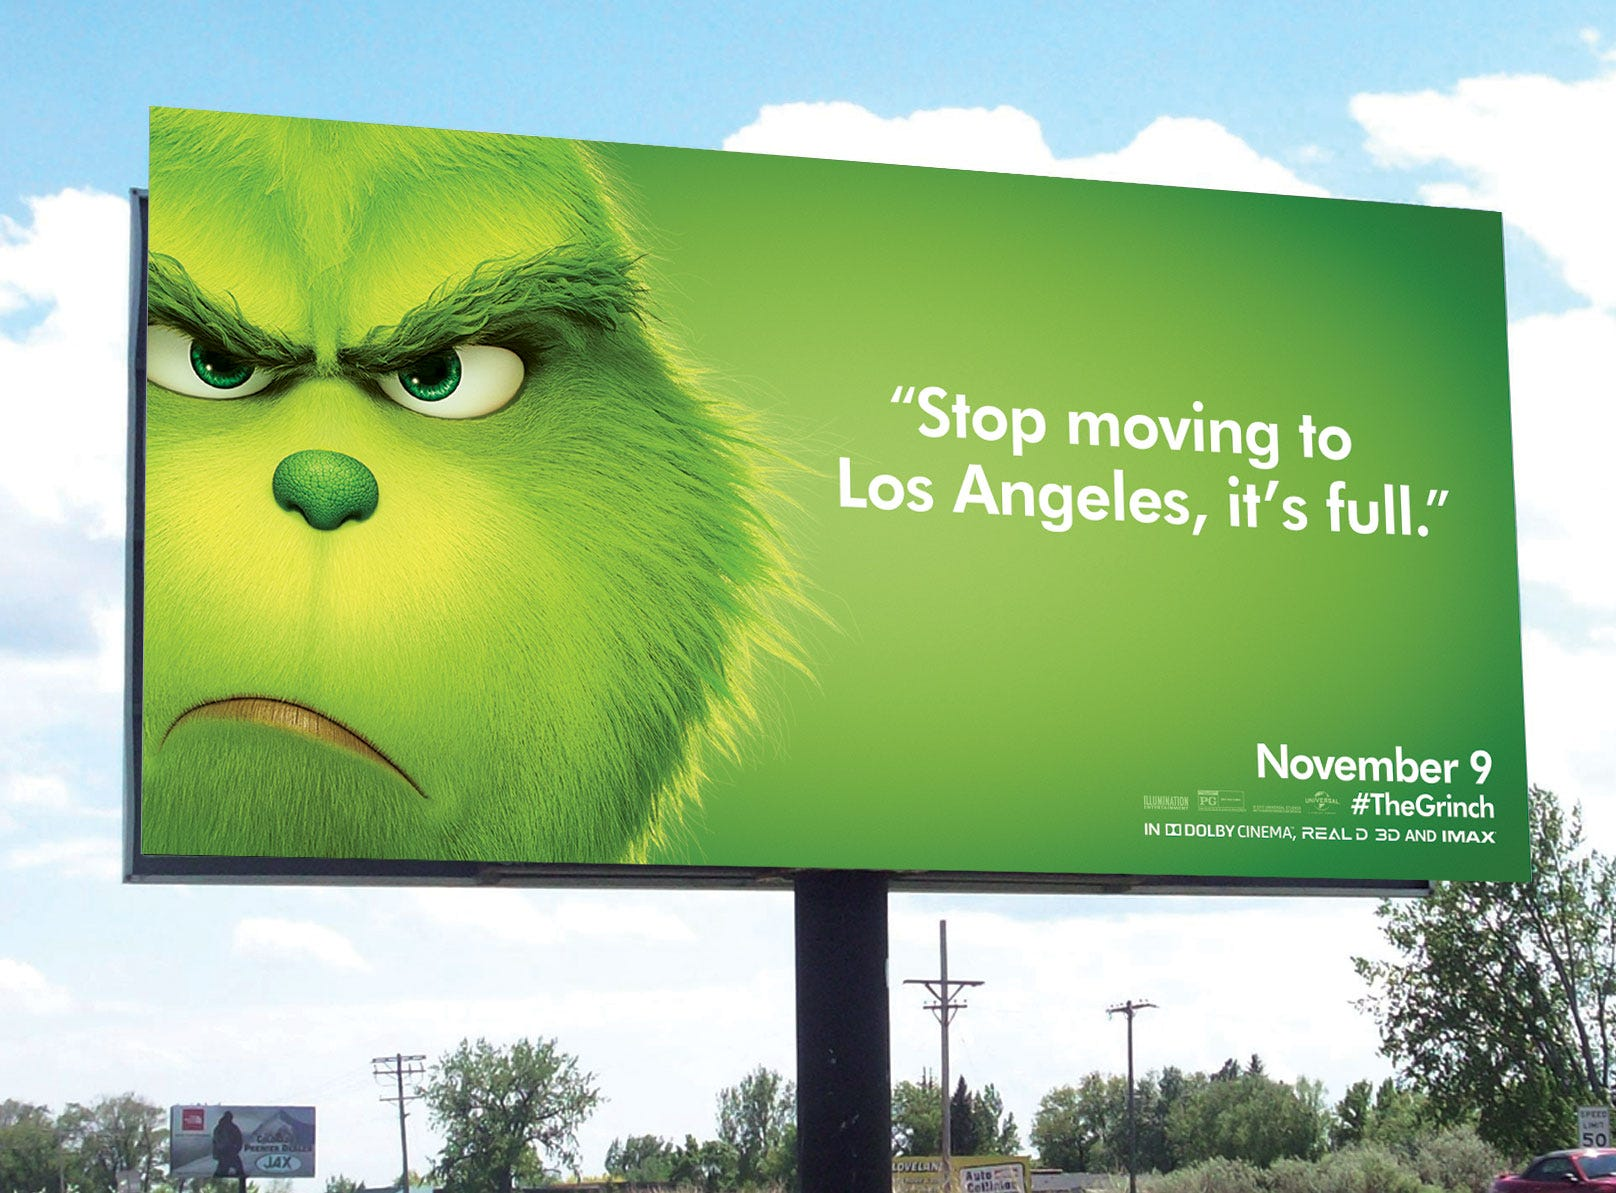 The Grinch is not subtle to people thinking of moving to sunny Los Angeles.